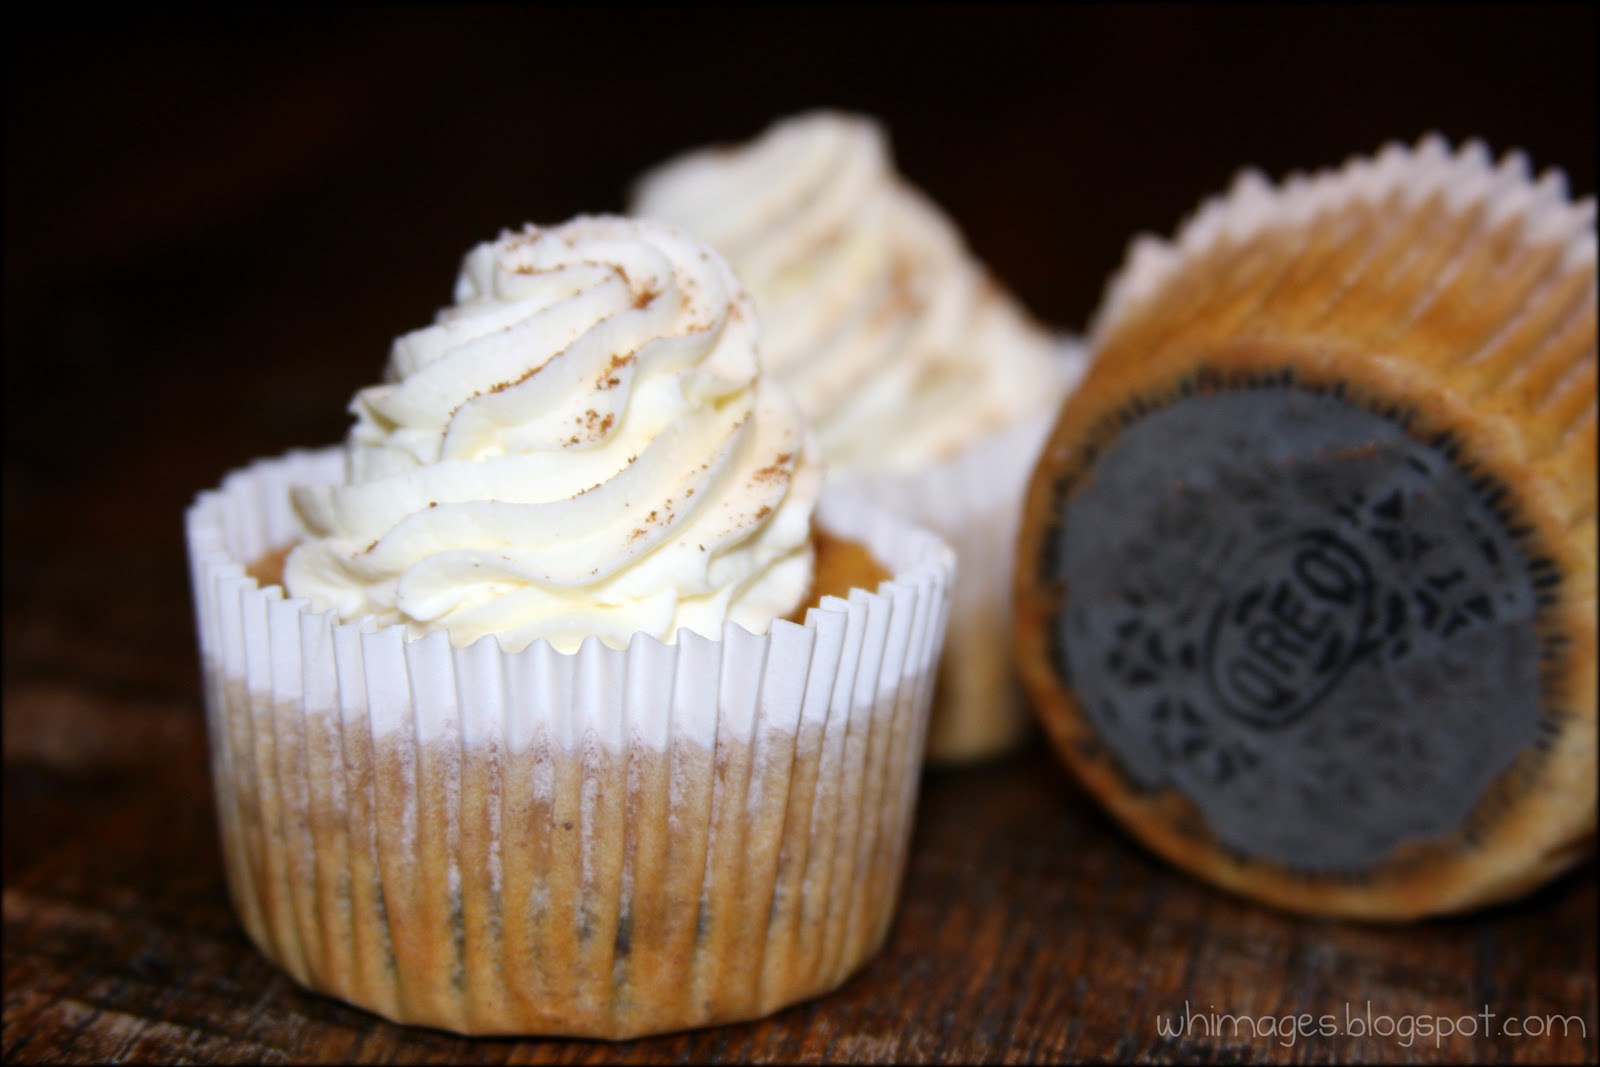 WHIMAGES: Mini Pumpkin Cheesecakes